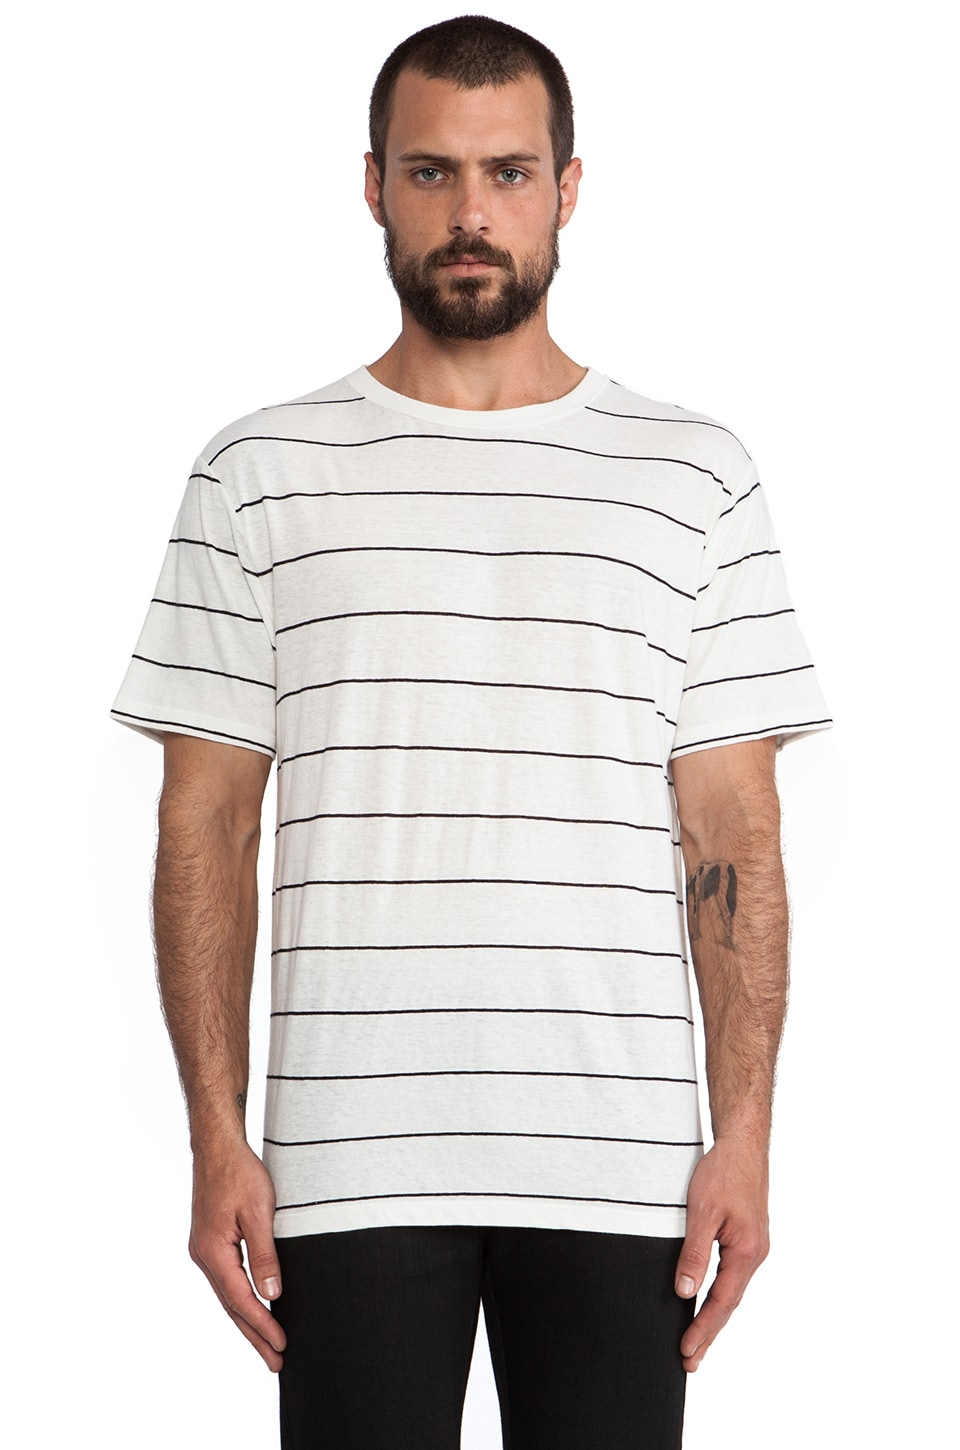 T by Alexander Wang Linen Stripe Short Sleeve Tee in Ivory & Onyx